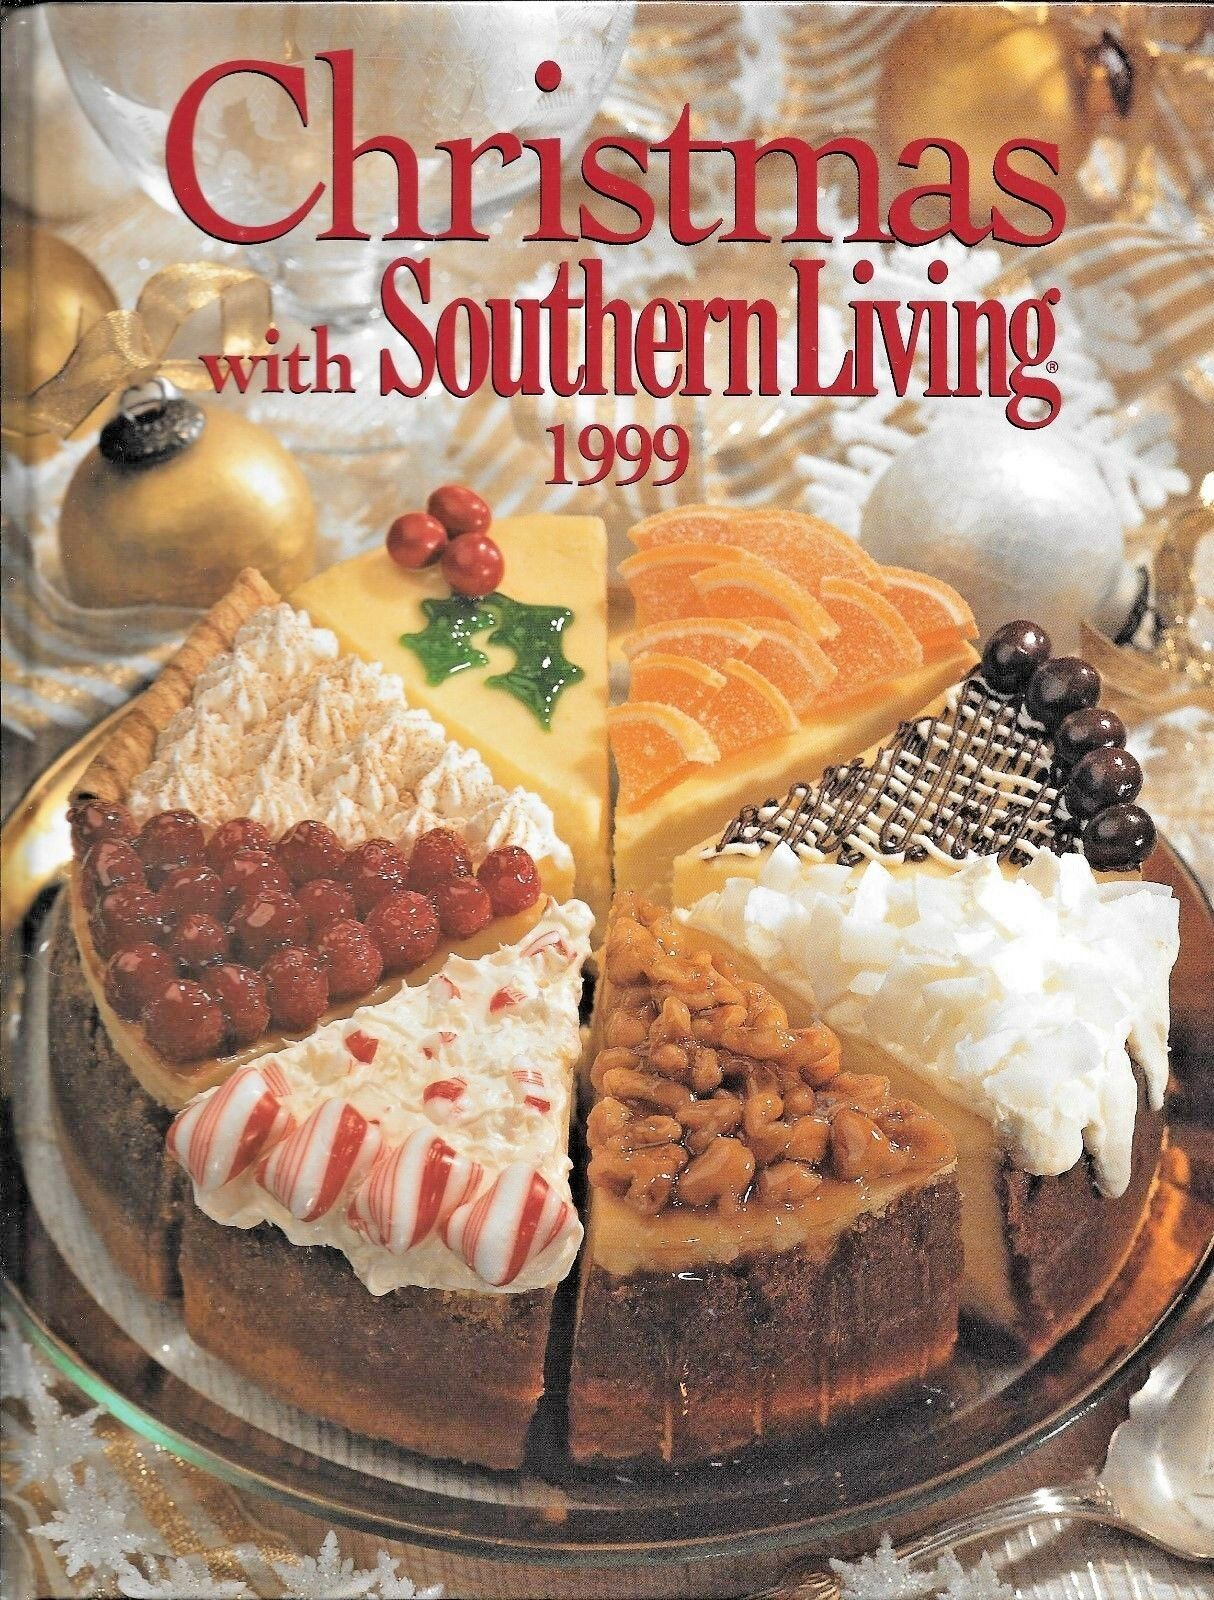 Christmas with southern living christmas with southern living 1999 picture 1 of 1 forumfinder Choice Image